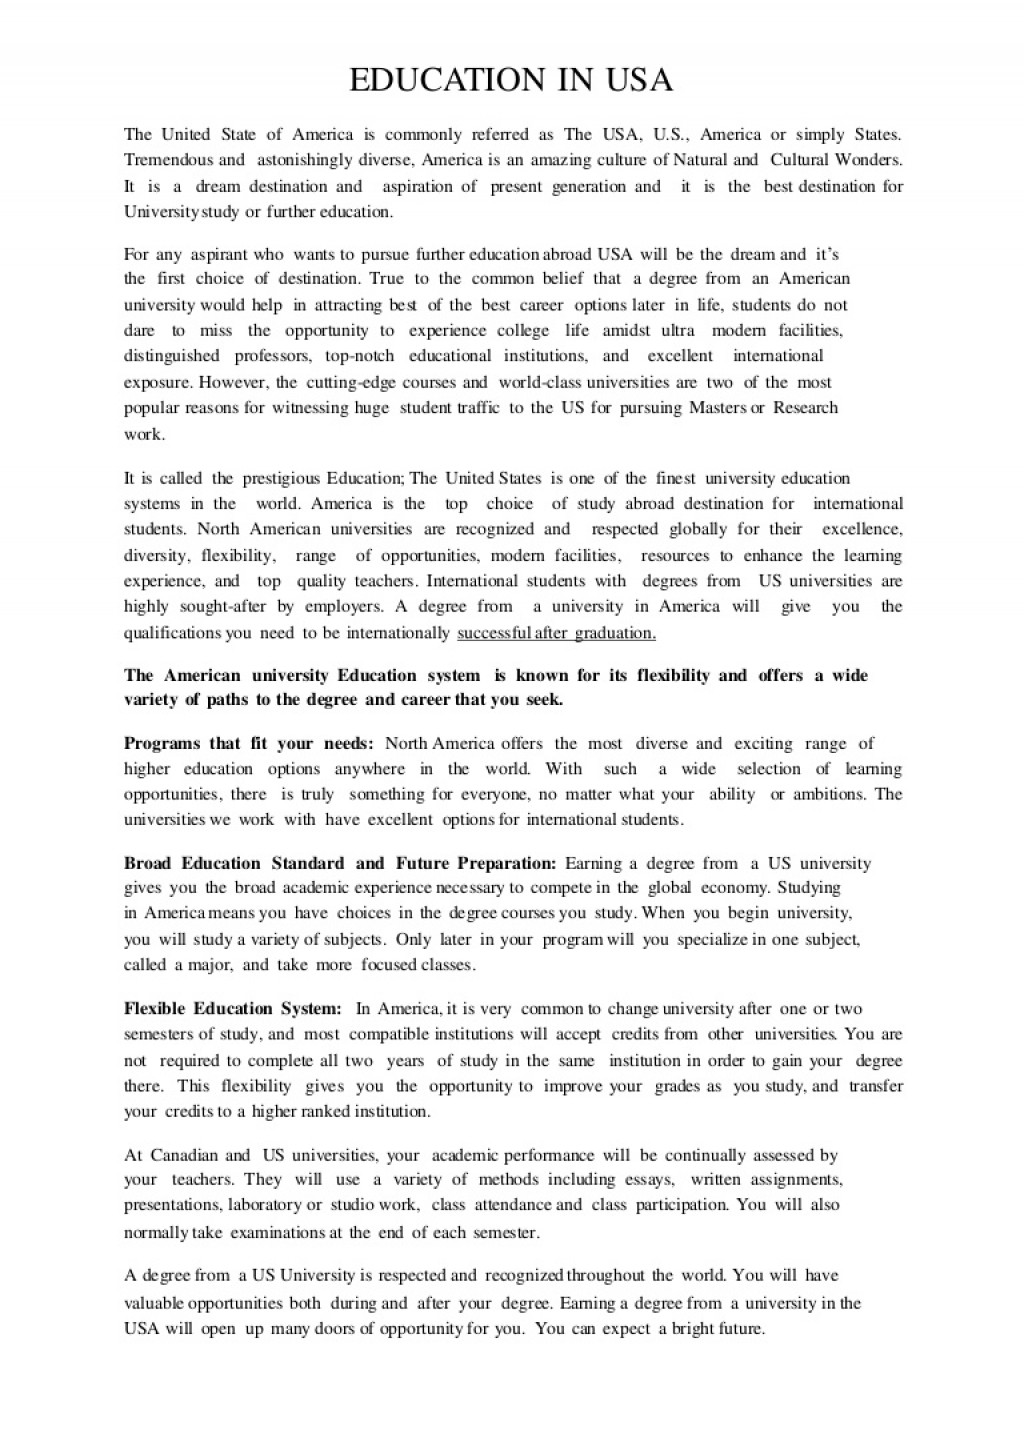 006 Essay Example Education In America Whb12 Jpg Pay For Investments Admission Higher Educationinusappt Phpapp01 Thumbn History Of Reform Problems Inequality Poverty And Free Stupendous What Is An American Ideas Definition Crevecoeur Summary Large